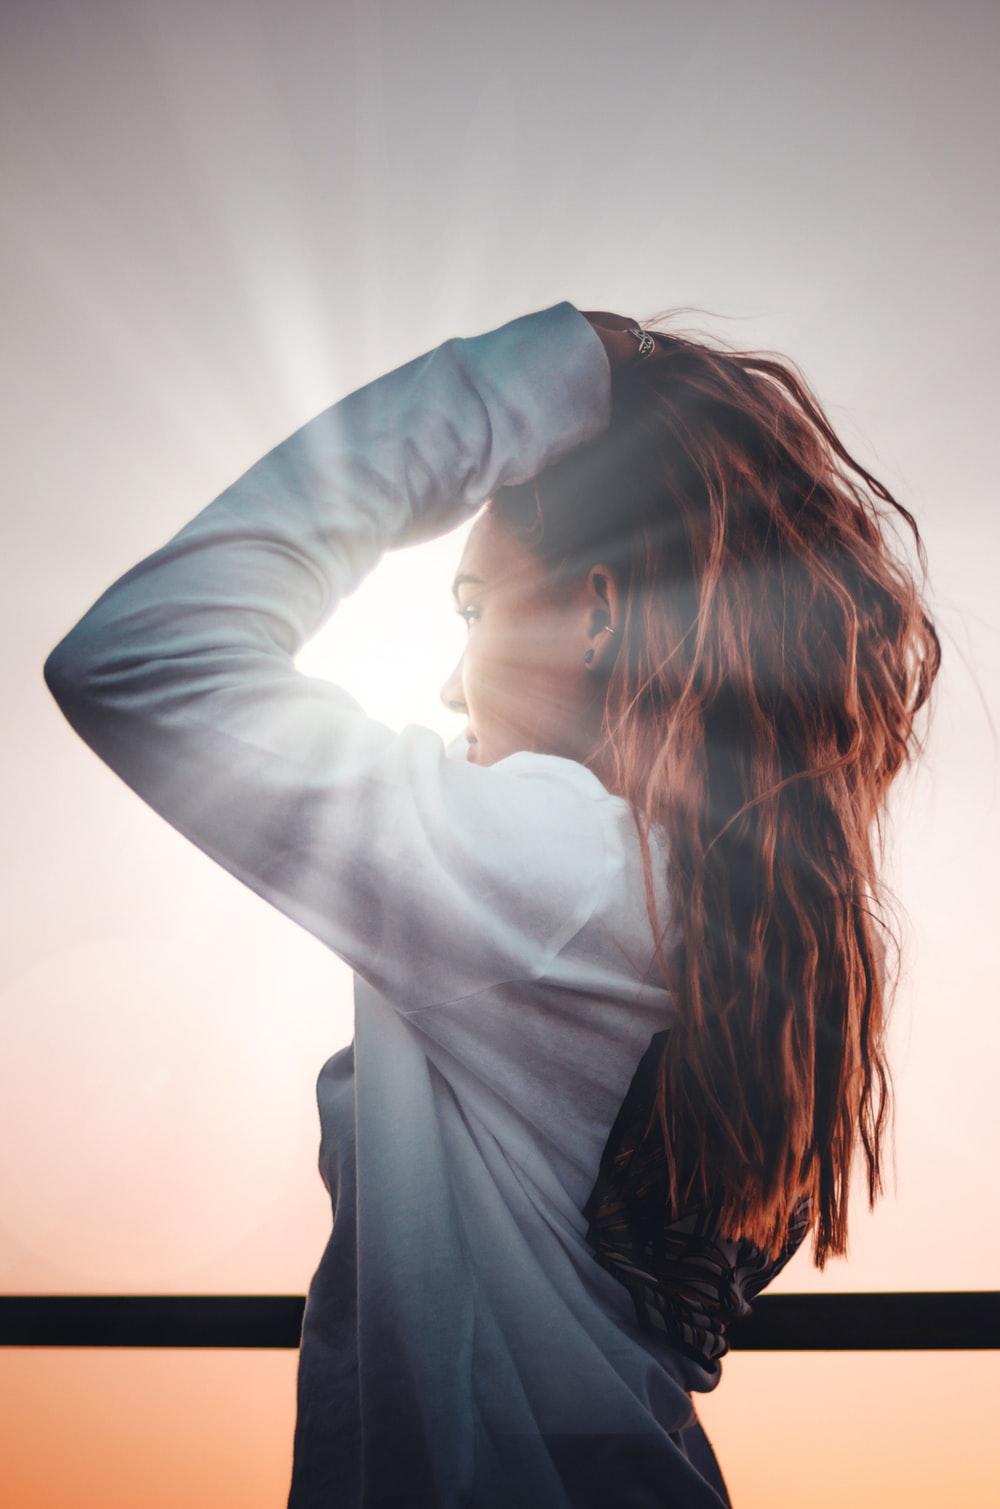 woman holding her hair during sunset